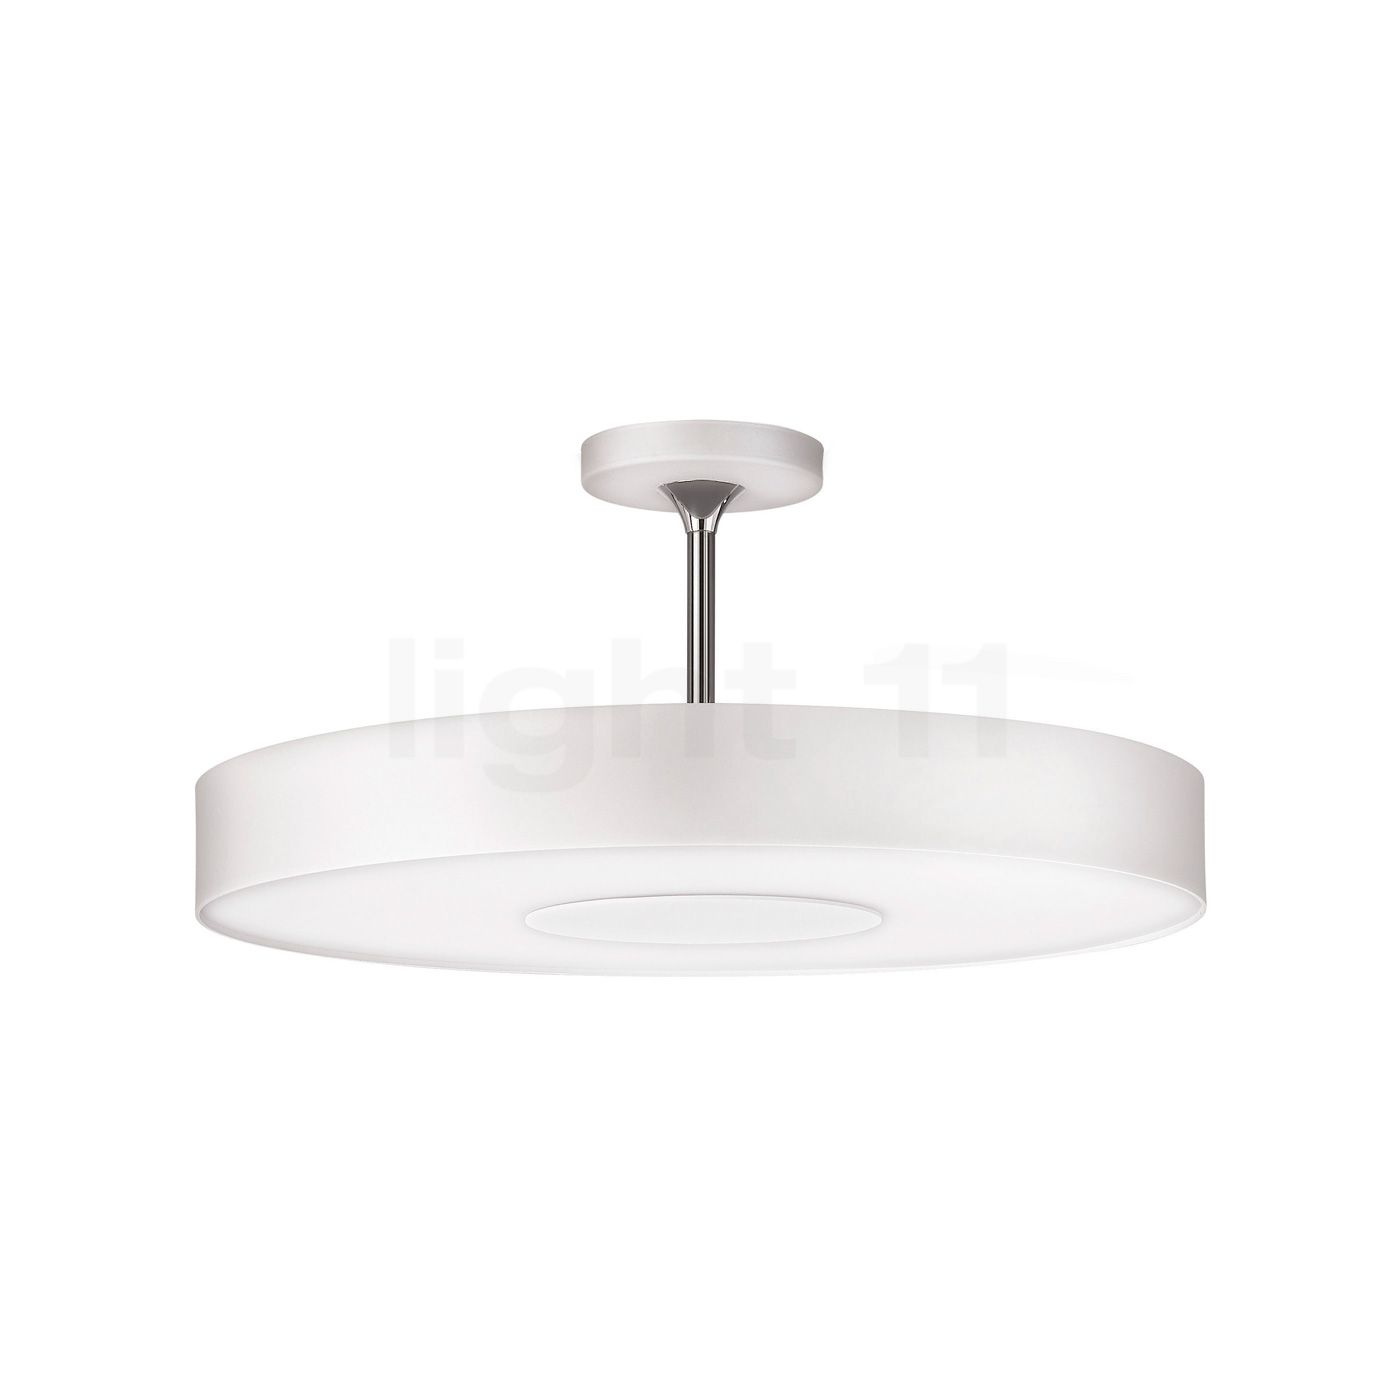 Philips instyle lampade per cucina da interno su light11.it